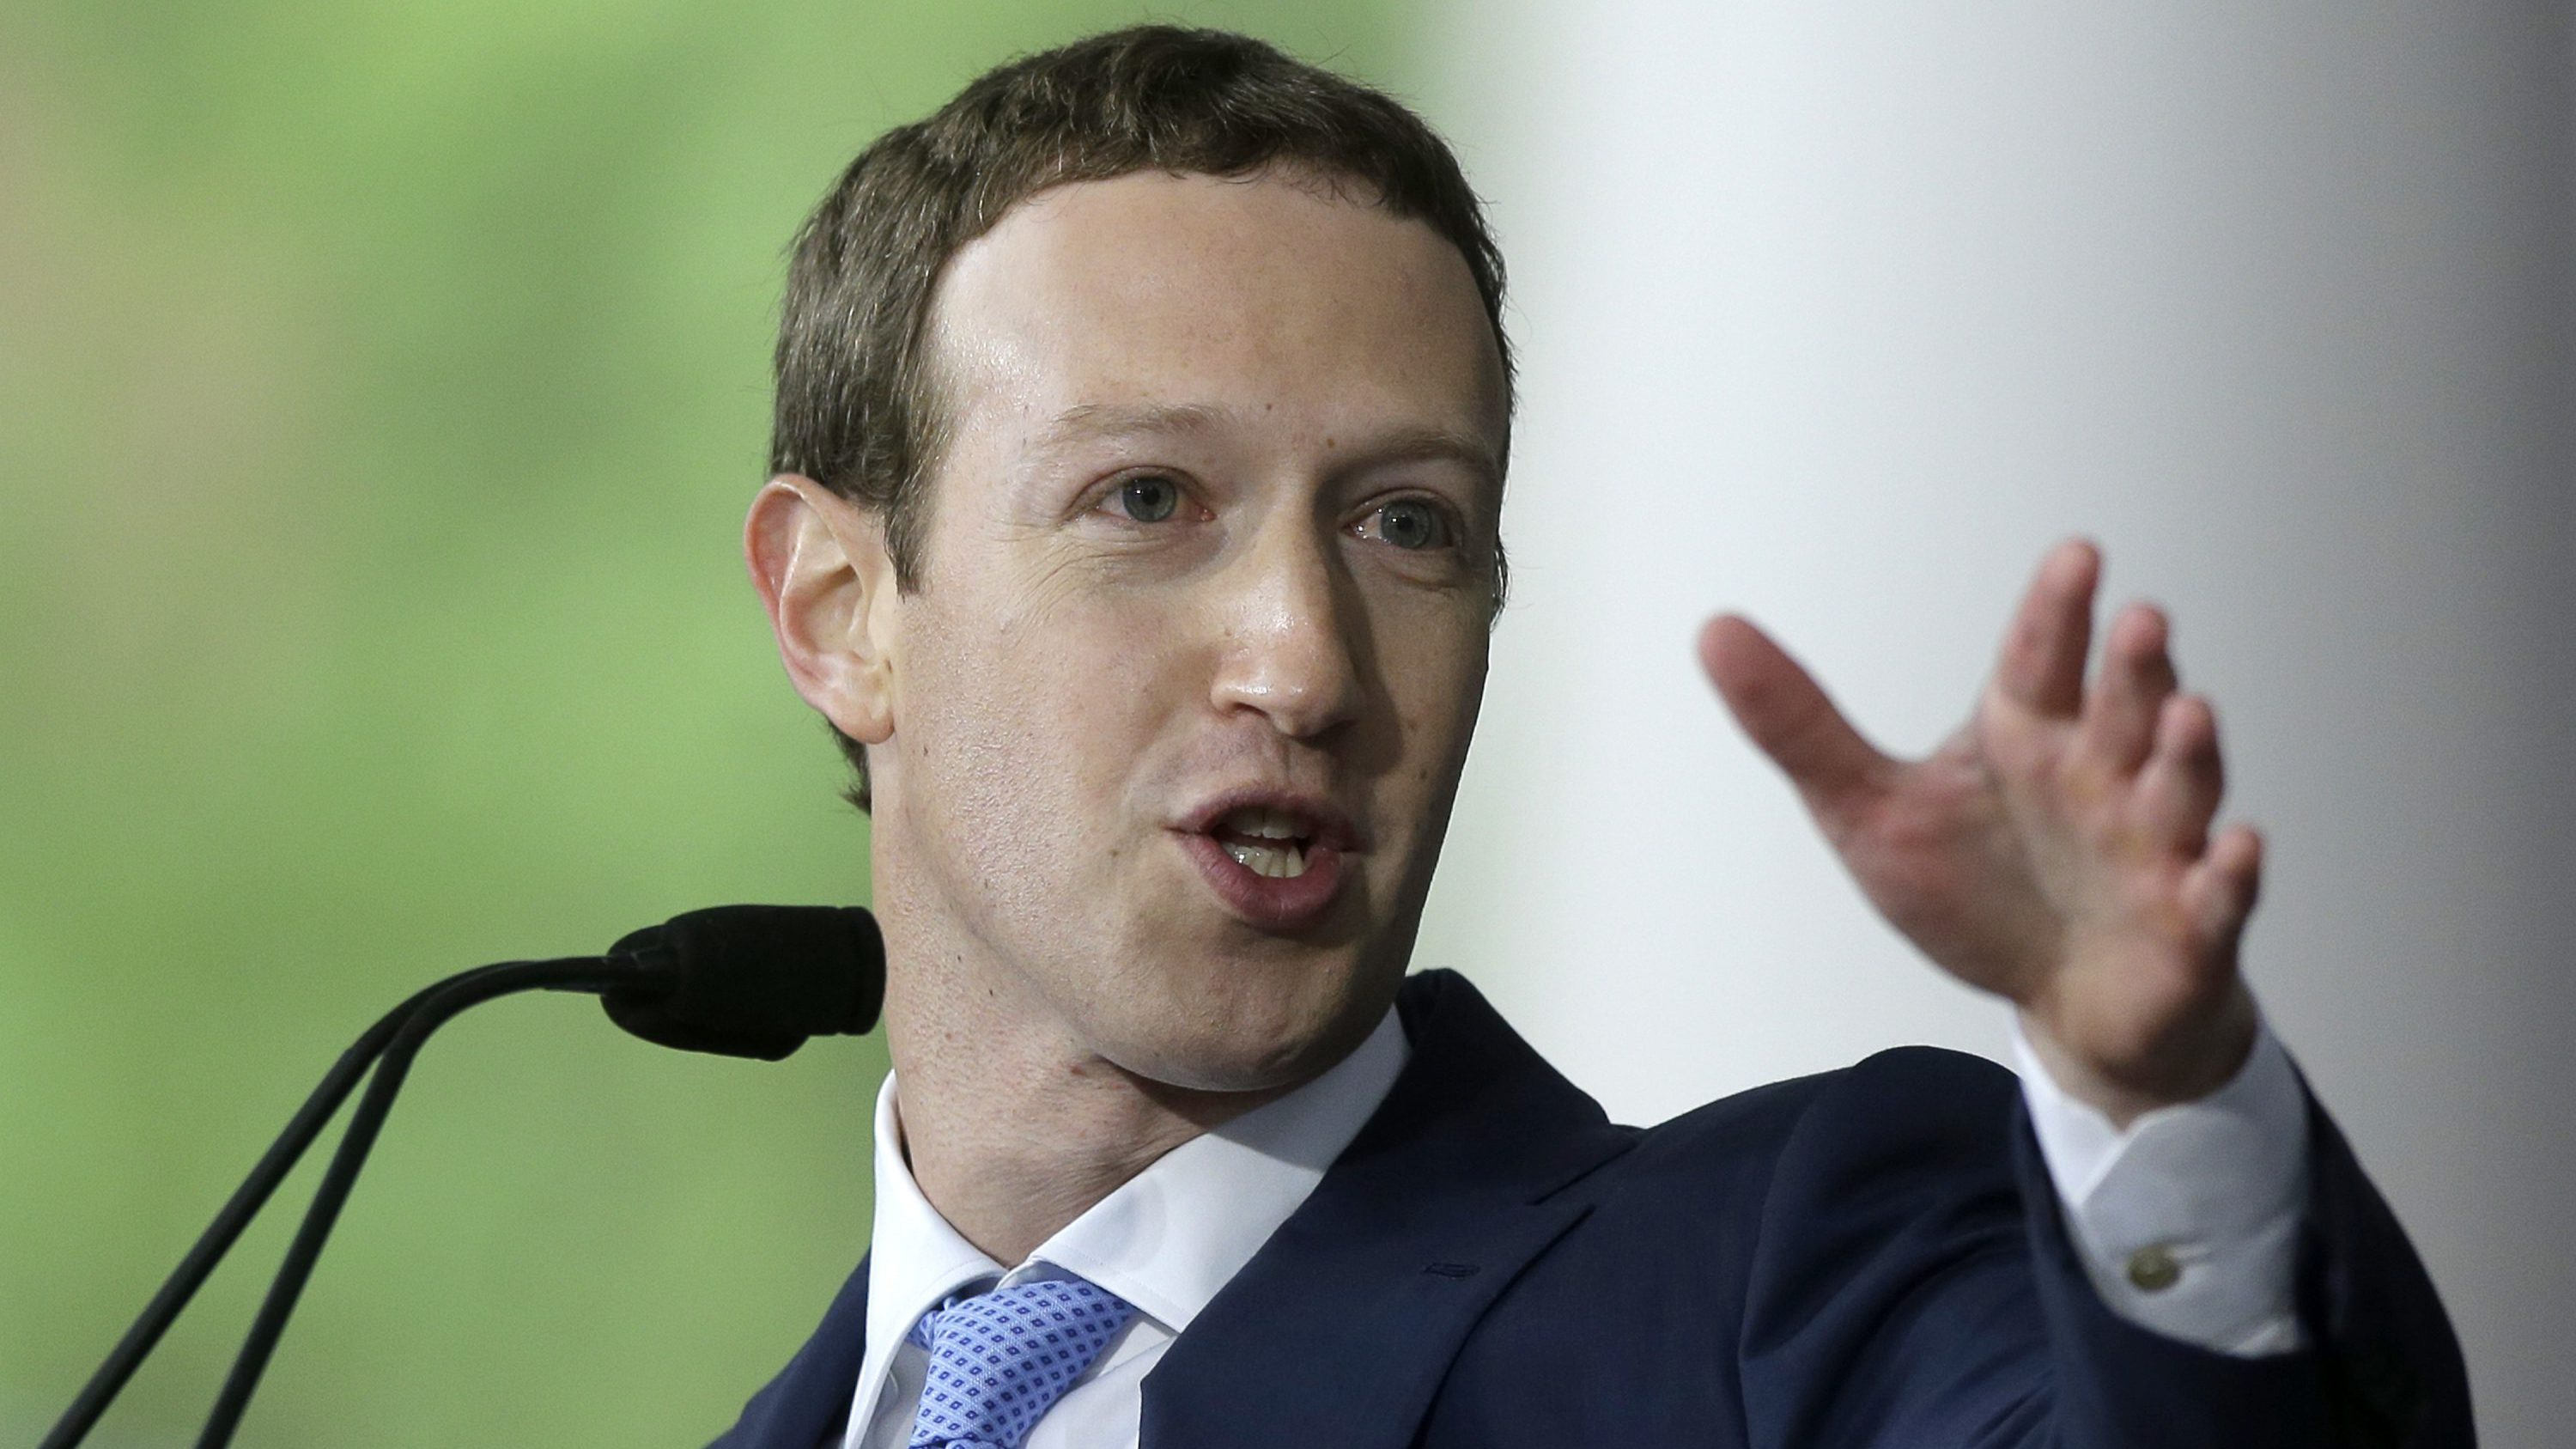 """In this May 25, 2017, file photo, Facebook CEO Mark Zuckerberg delivers the commencement address at Harvard University in Cambridge, Mass. Zuckerberg says his """"personal challenge"""" for 2018 is to fix Facebook. Zuckerberg wrote in a post Thursday, Jan. 4, 2018, that he now wants to focus on protecting Facebook users from abuse, defending against interference by nation-states and """"making sure that time spent on Facebook is time well spent."""""""